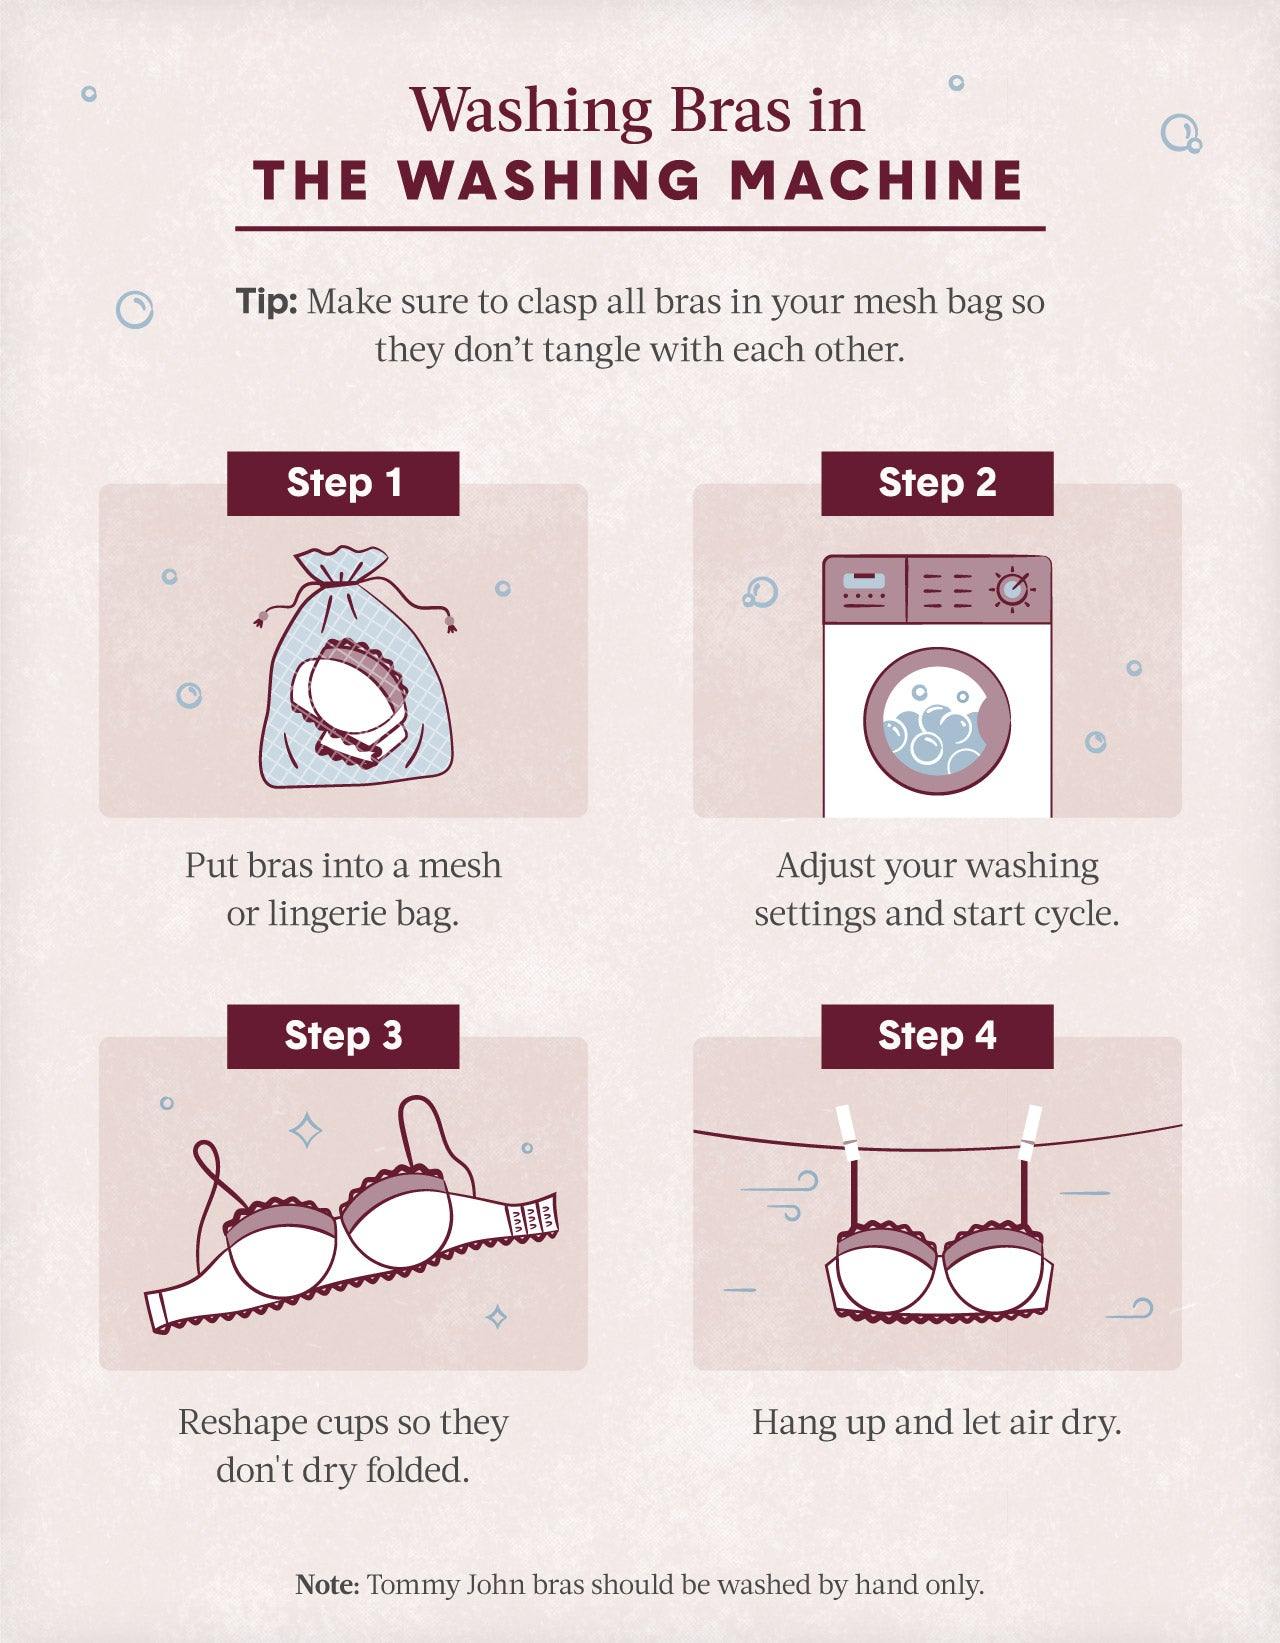 workflow instructing how to wash bras in a washing machine with illustrations of a washing machine a wash bag and bra